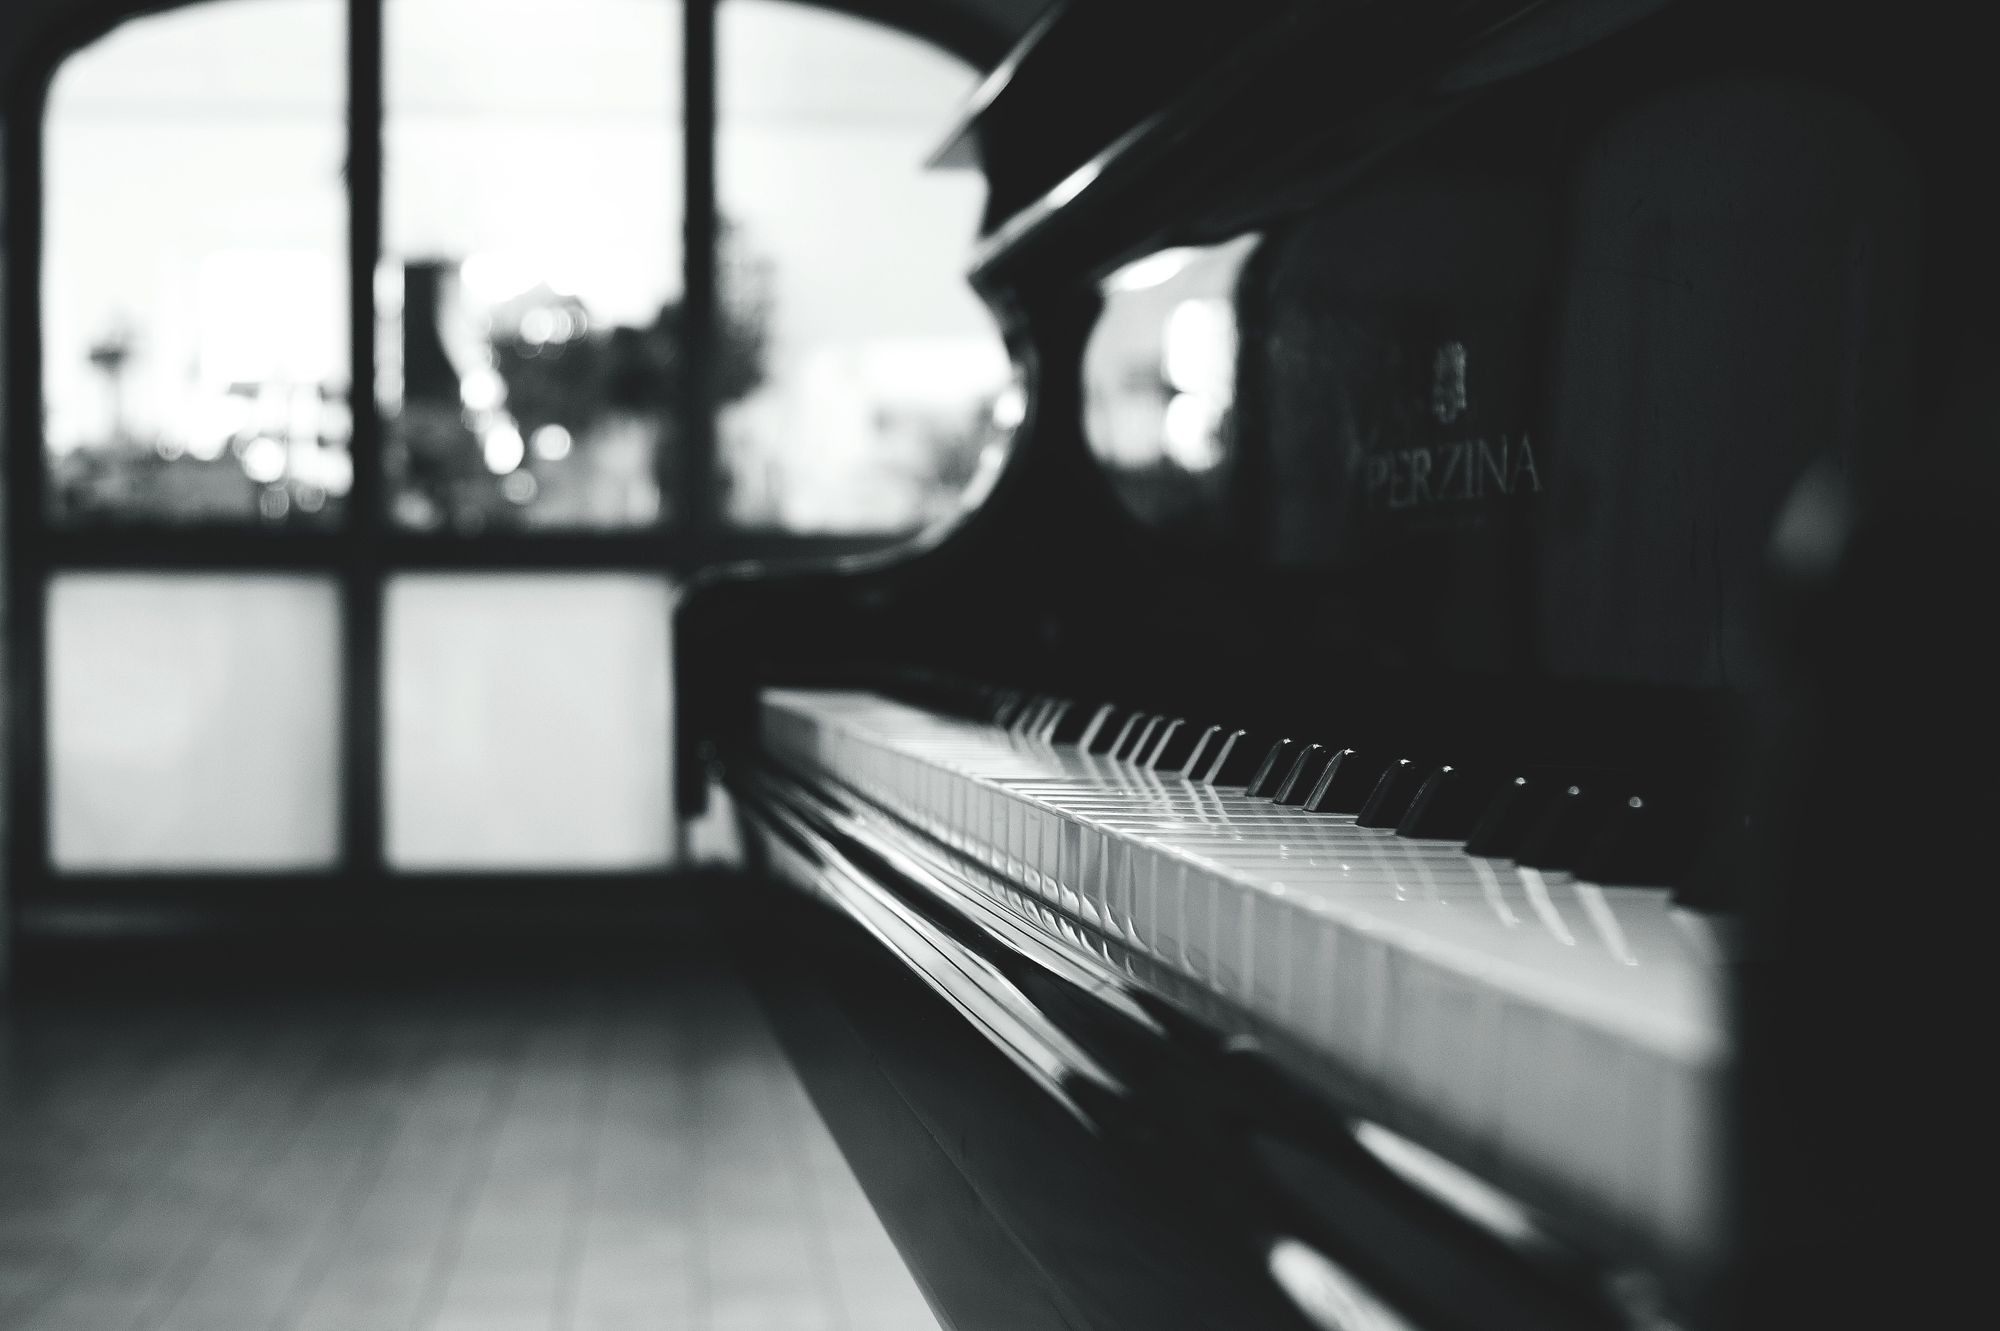 Airbnb with a piano filter